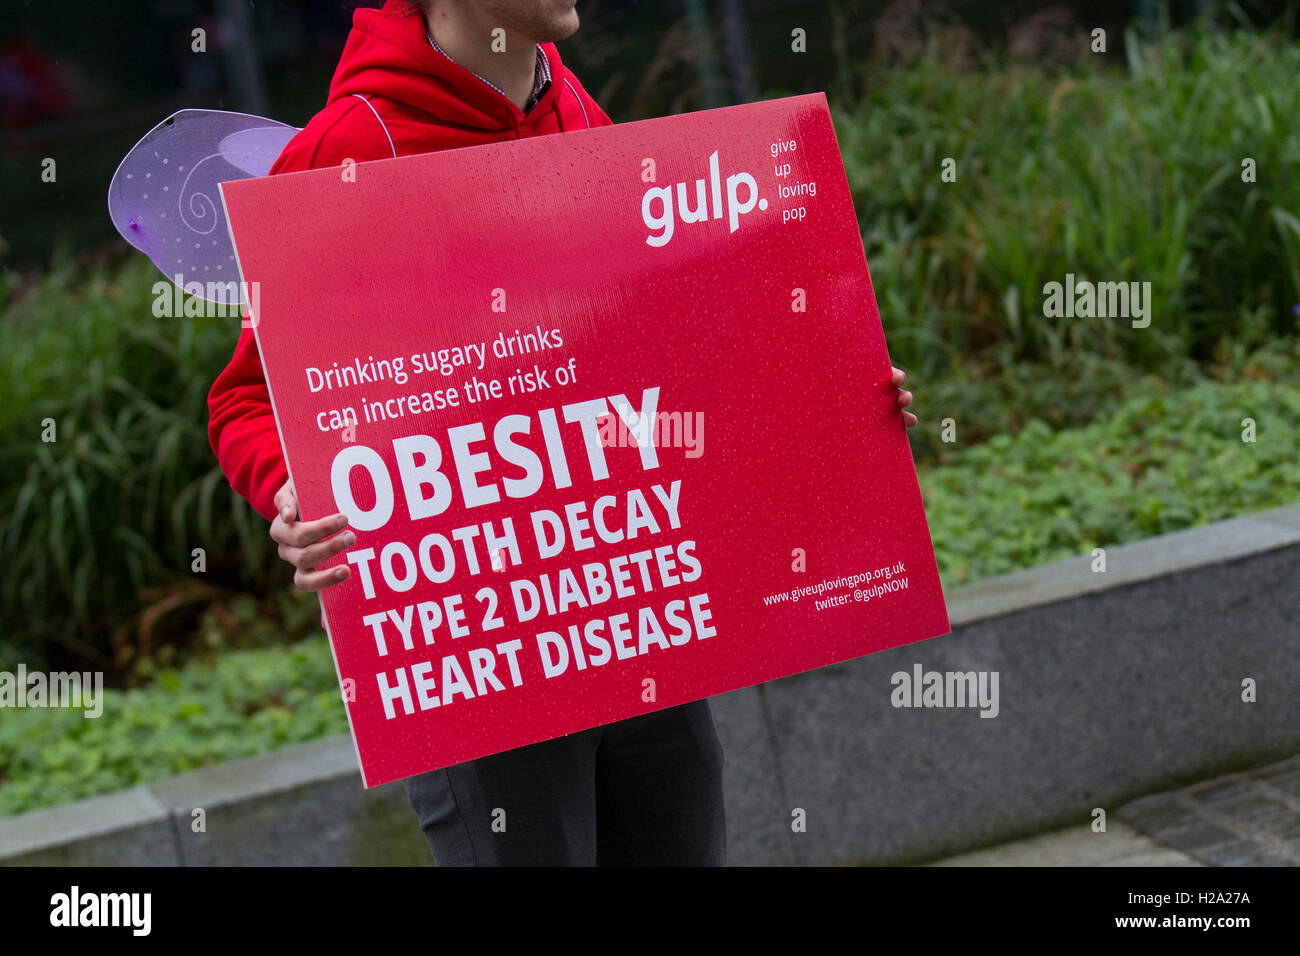 Liverpool, Merseyside, UK.  26th September, 2016. Anti-Obesity campaigners outside the Labour Conference Arena. - Stock Image